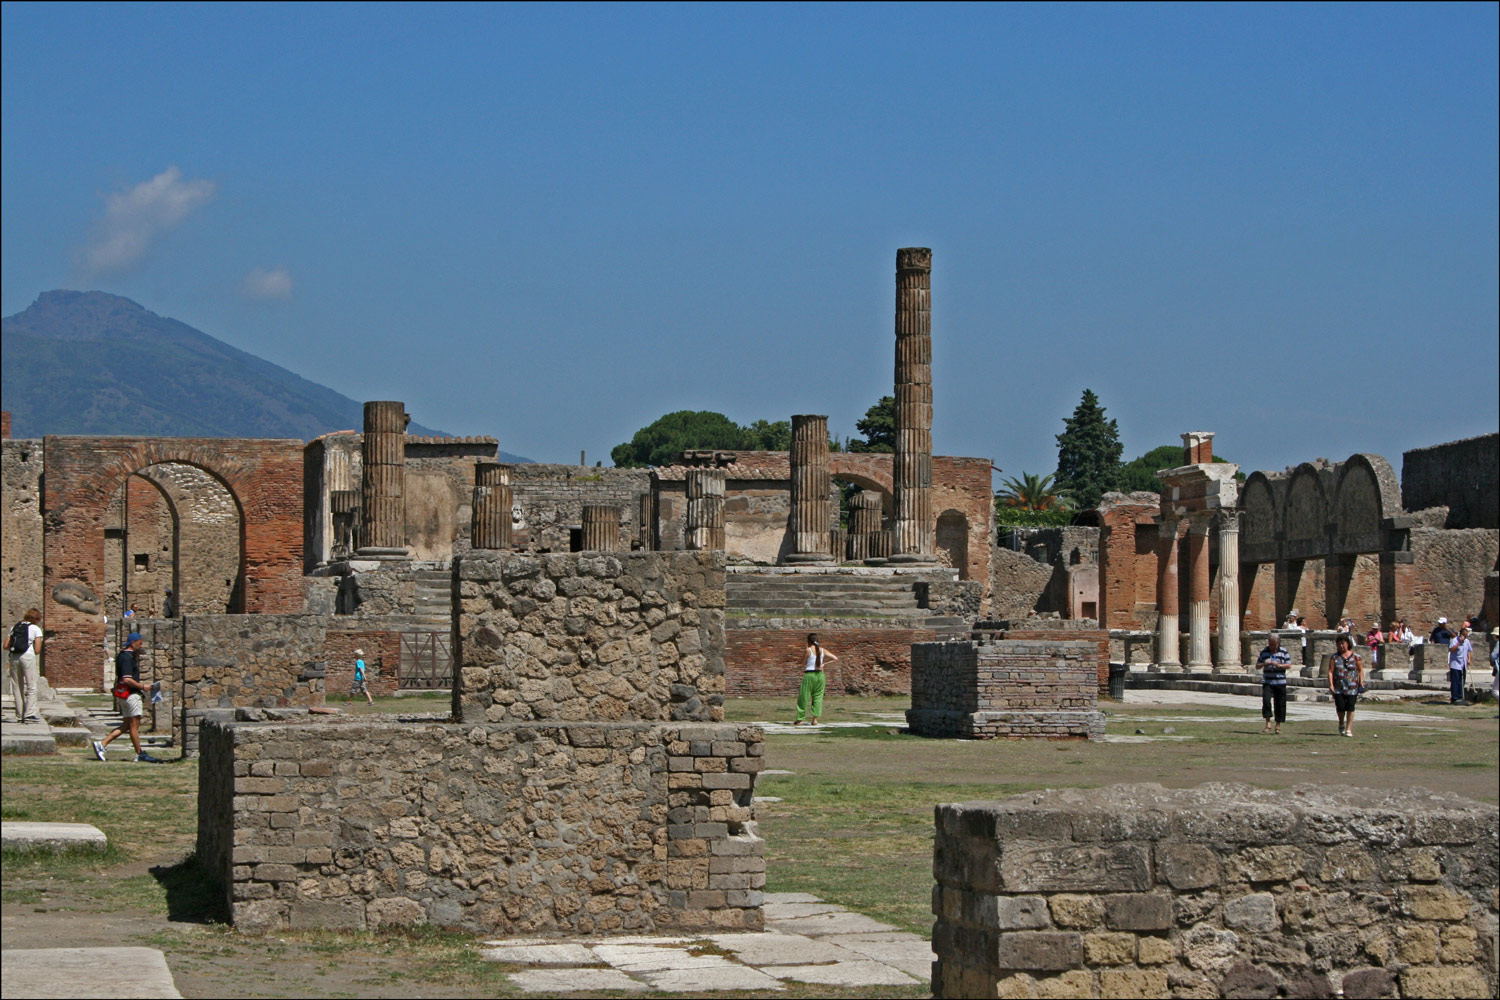 Arch of Augustus, Temple of Jupiter, and Macellum